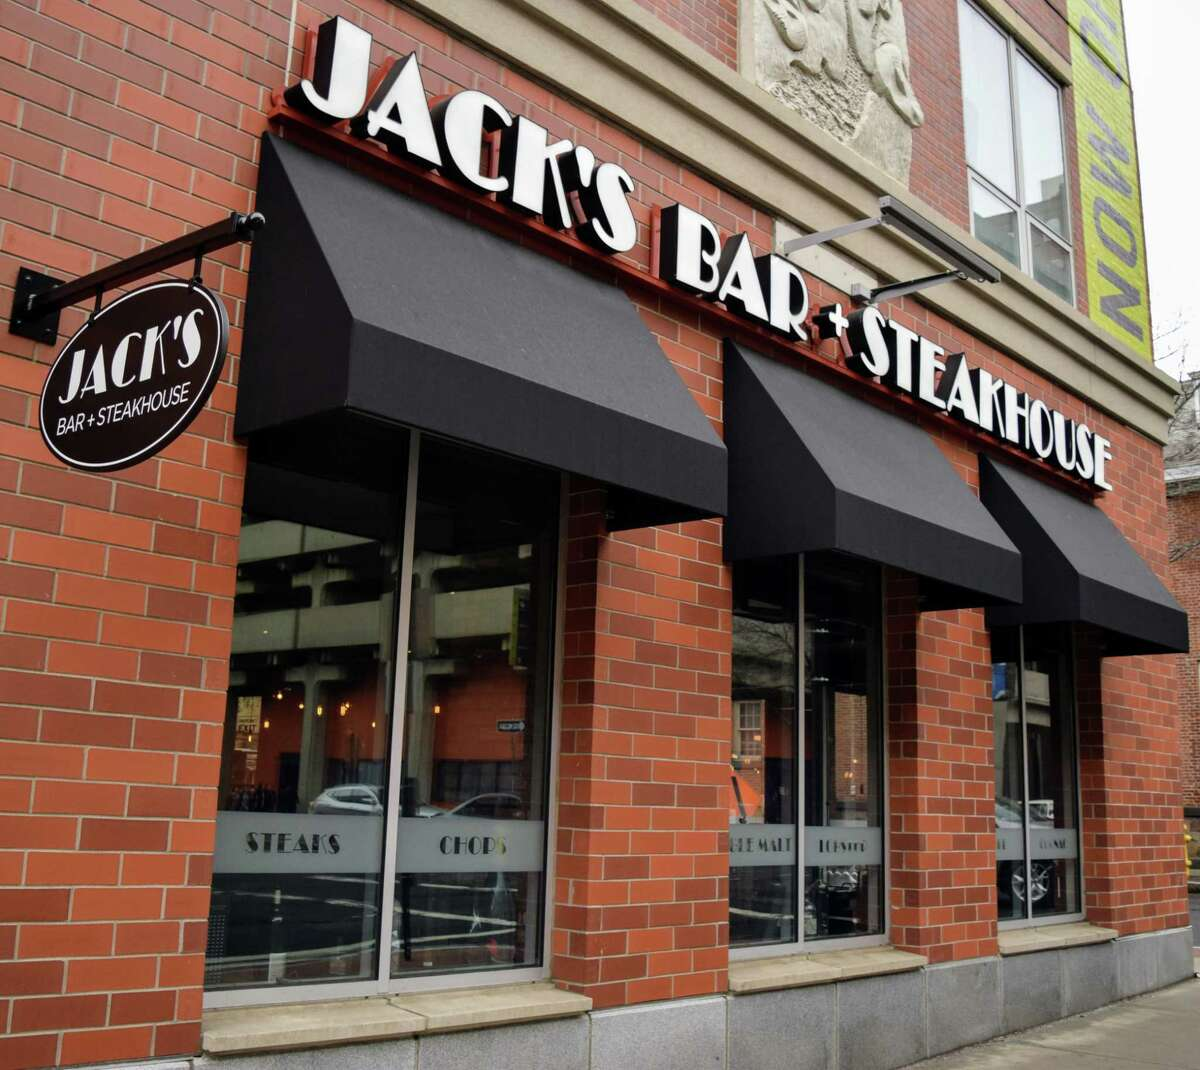 Jack's Bar & Steakhouse in New Haven